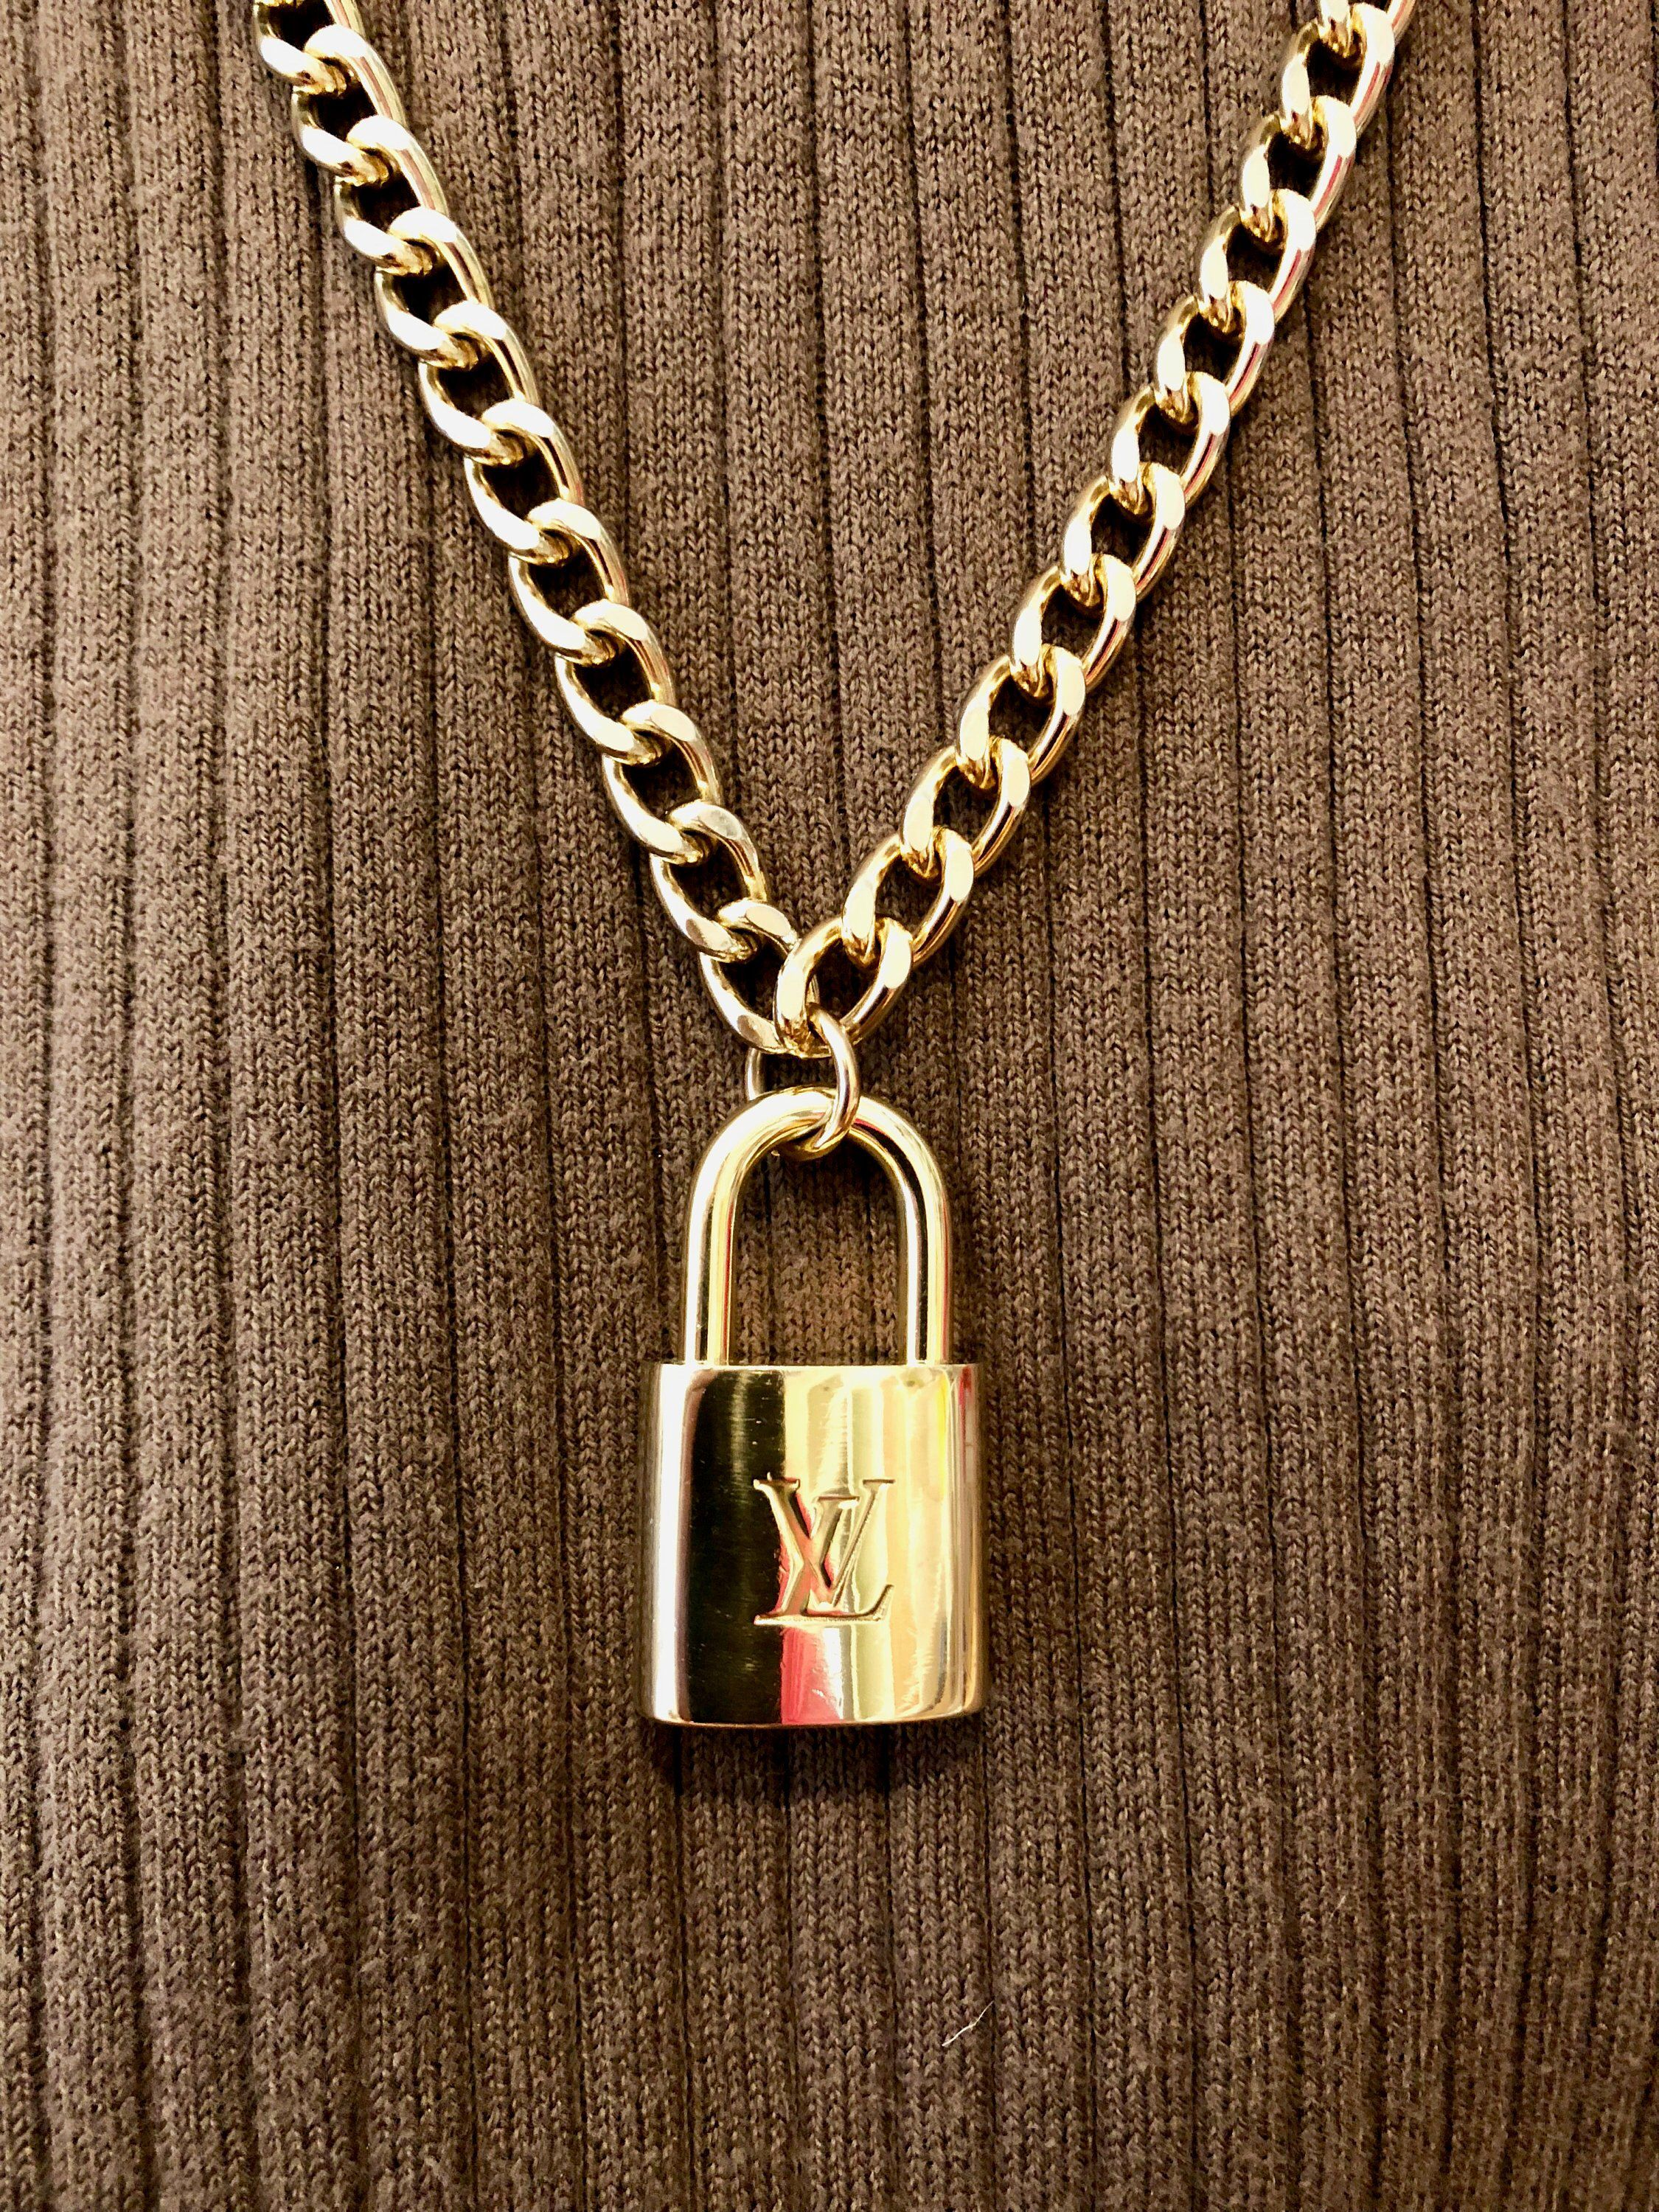 58724fee5613 Pin by LouisVuittonUpcycle on Vuitton Style in 2019